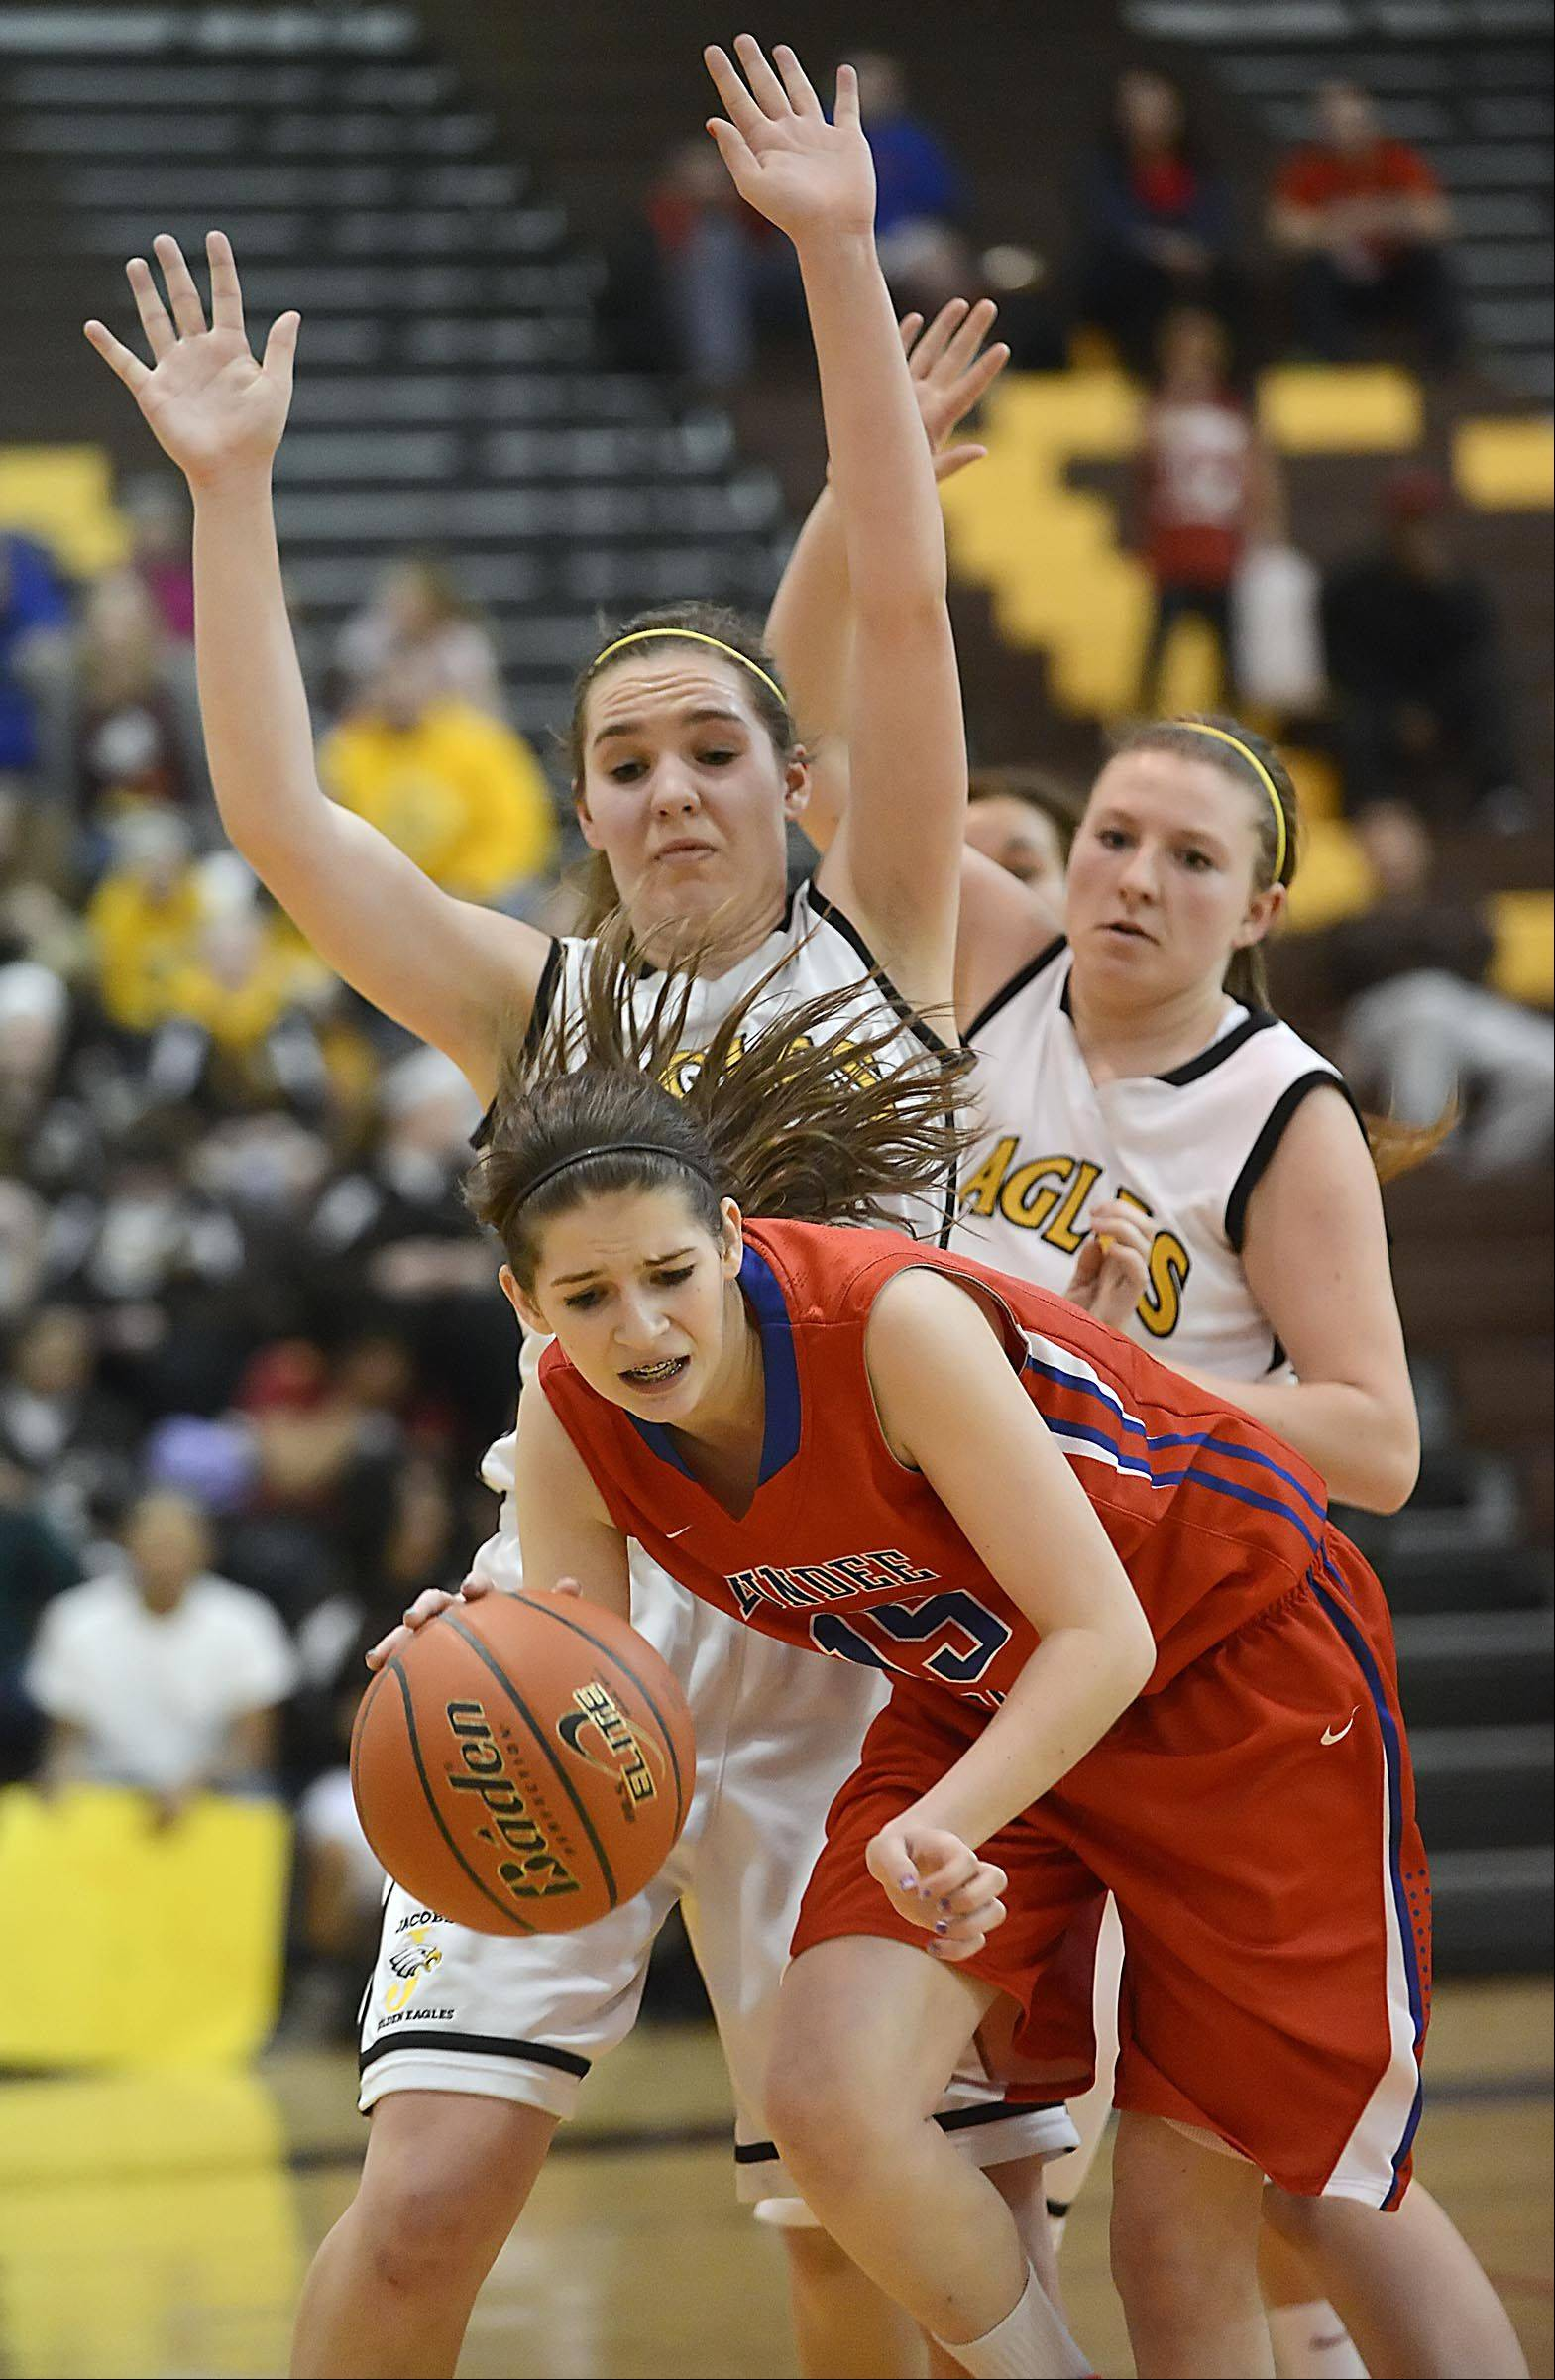 Dundee-Crown's Melissa Barker is turned away from the basket by Jacobs' Maggie Grady and Teaghan Richman, right, Tuesday in Algonquin.